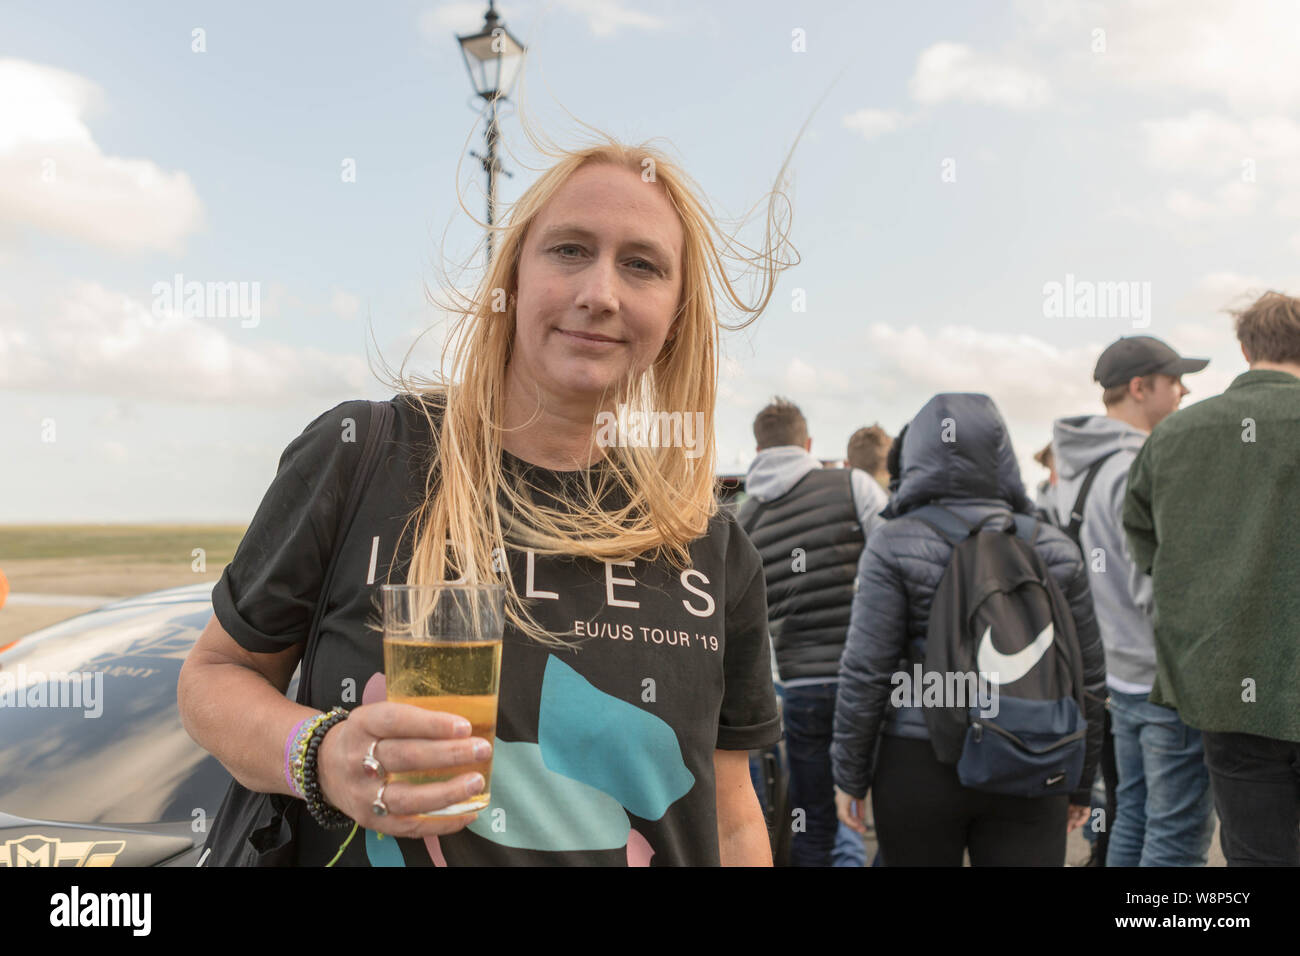 Southend on Sea, UK. 10th Aug, 2019. Cians mother, Hayley. Friends and family of Cian Daly, one of five people who passed away at the end of July in suspected drugs-related deaths in South Essex, meet for a memorial ride on Southend seafront before heading to Leigh on Sea for a balloon release. Penelope Barritt/Alamy Live News Stock Photo